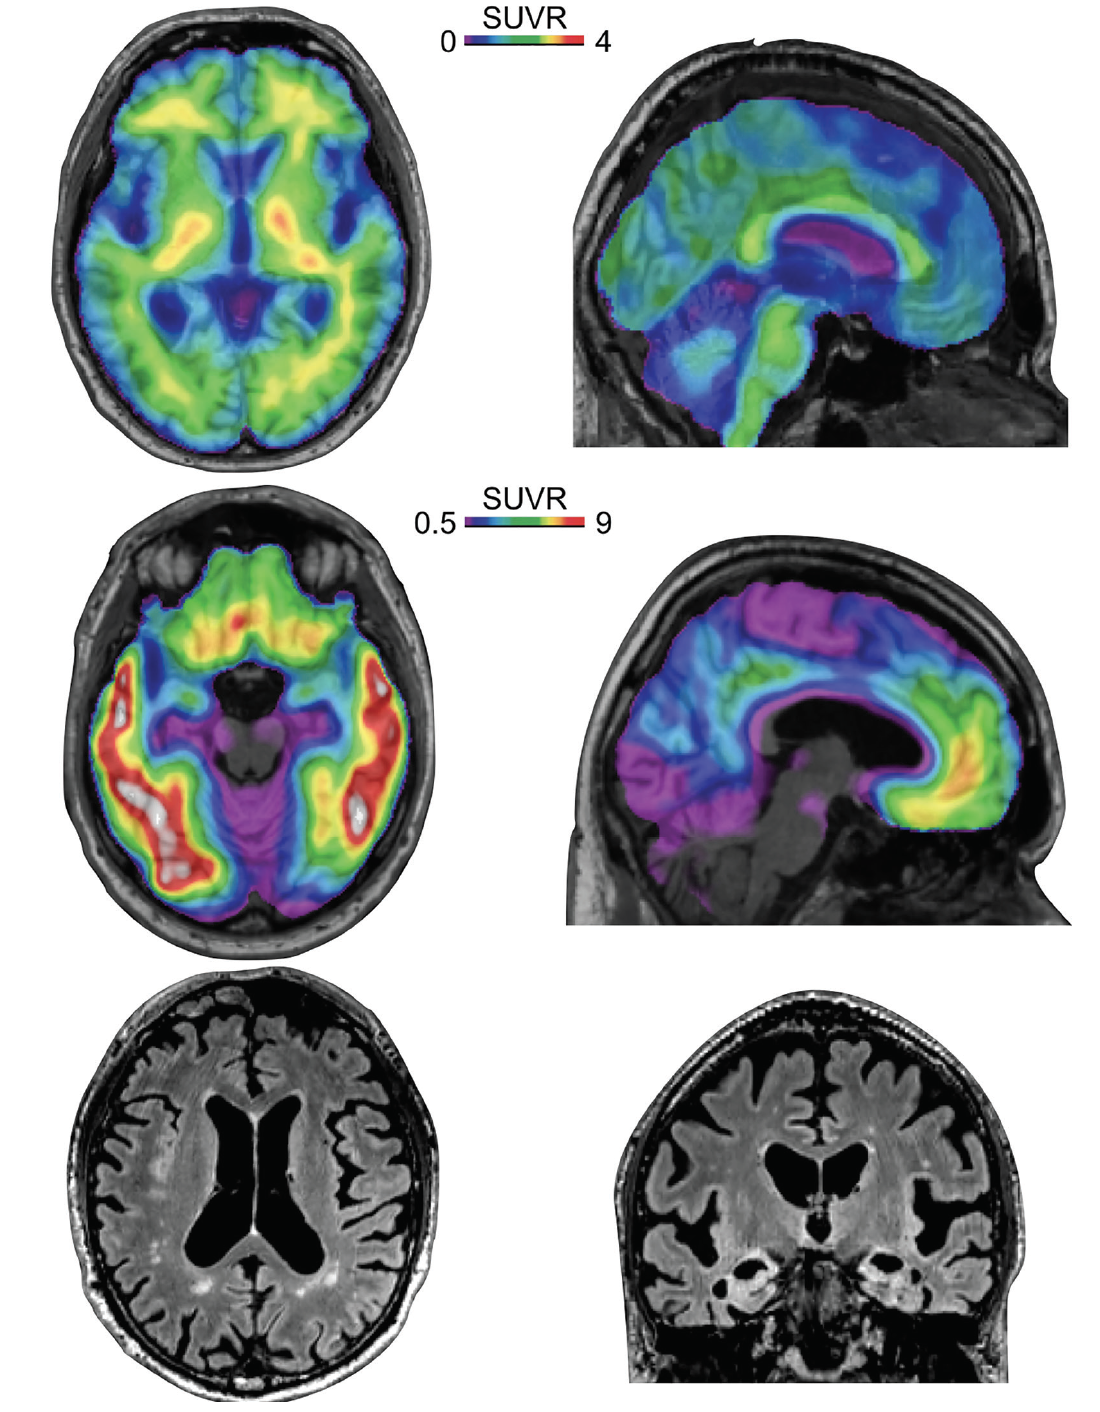 Figure. Amyloid positron emission tomography (PET), tau PET, and MRI from a man, age 80, with mild dementia (CDR 1) after a gradual cognitive decline over 5 years and clinical diagnosis of probable AD. The amyloid PET is read as negative, the tau PET positive on the temporal lobe, precuneus, inferior parietal cortex, orbitofrontal cortex, and amygdala (Braak V). The MRI shows mild general and hippocampal atrophy (Scheltens 4), White matter hyperintensities (WMH) are limited to the periventricular regions (Fazekas 1). This individual has a neurofibrillary tangle predominant dementia.